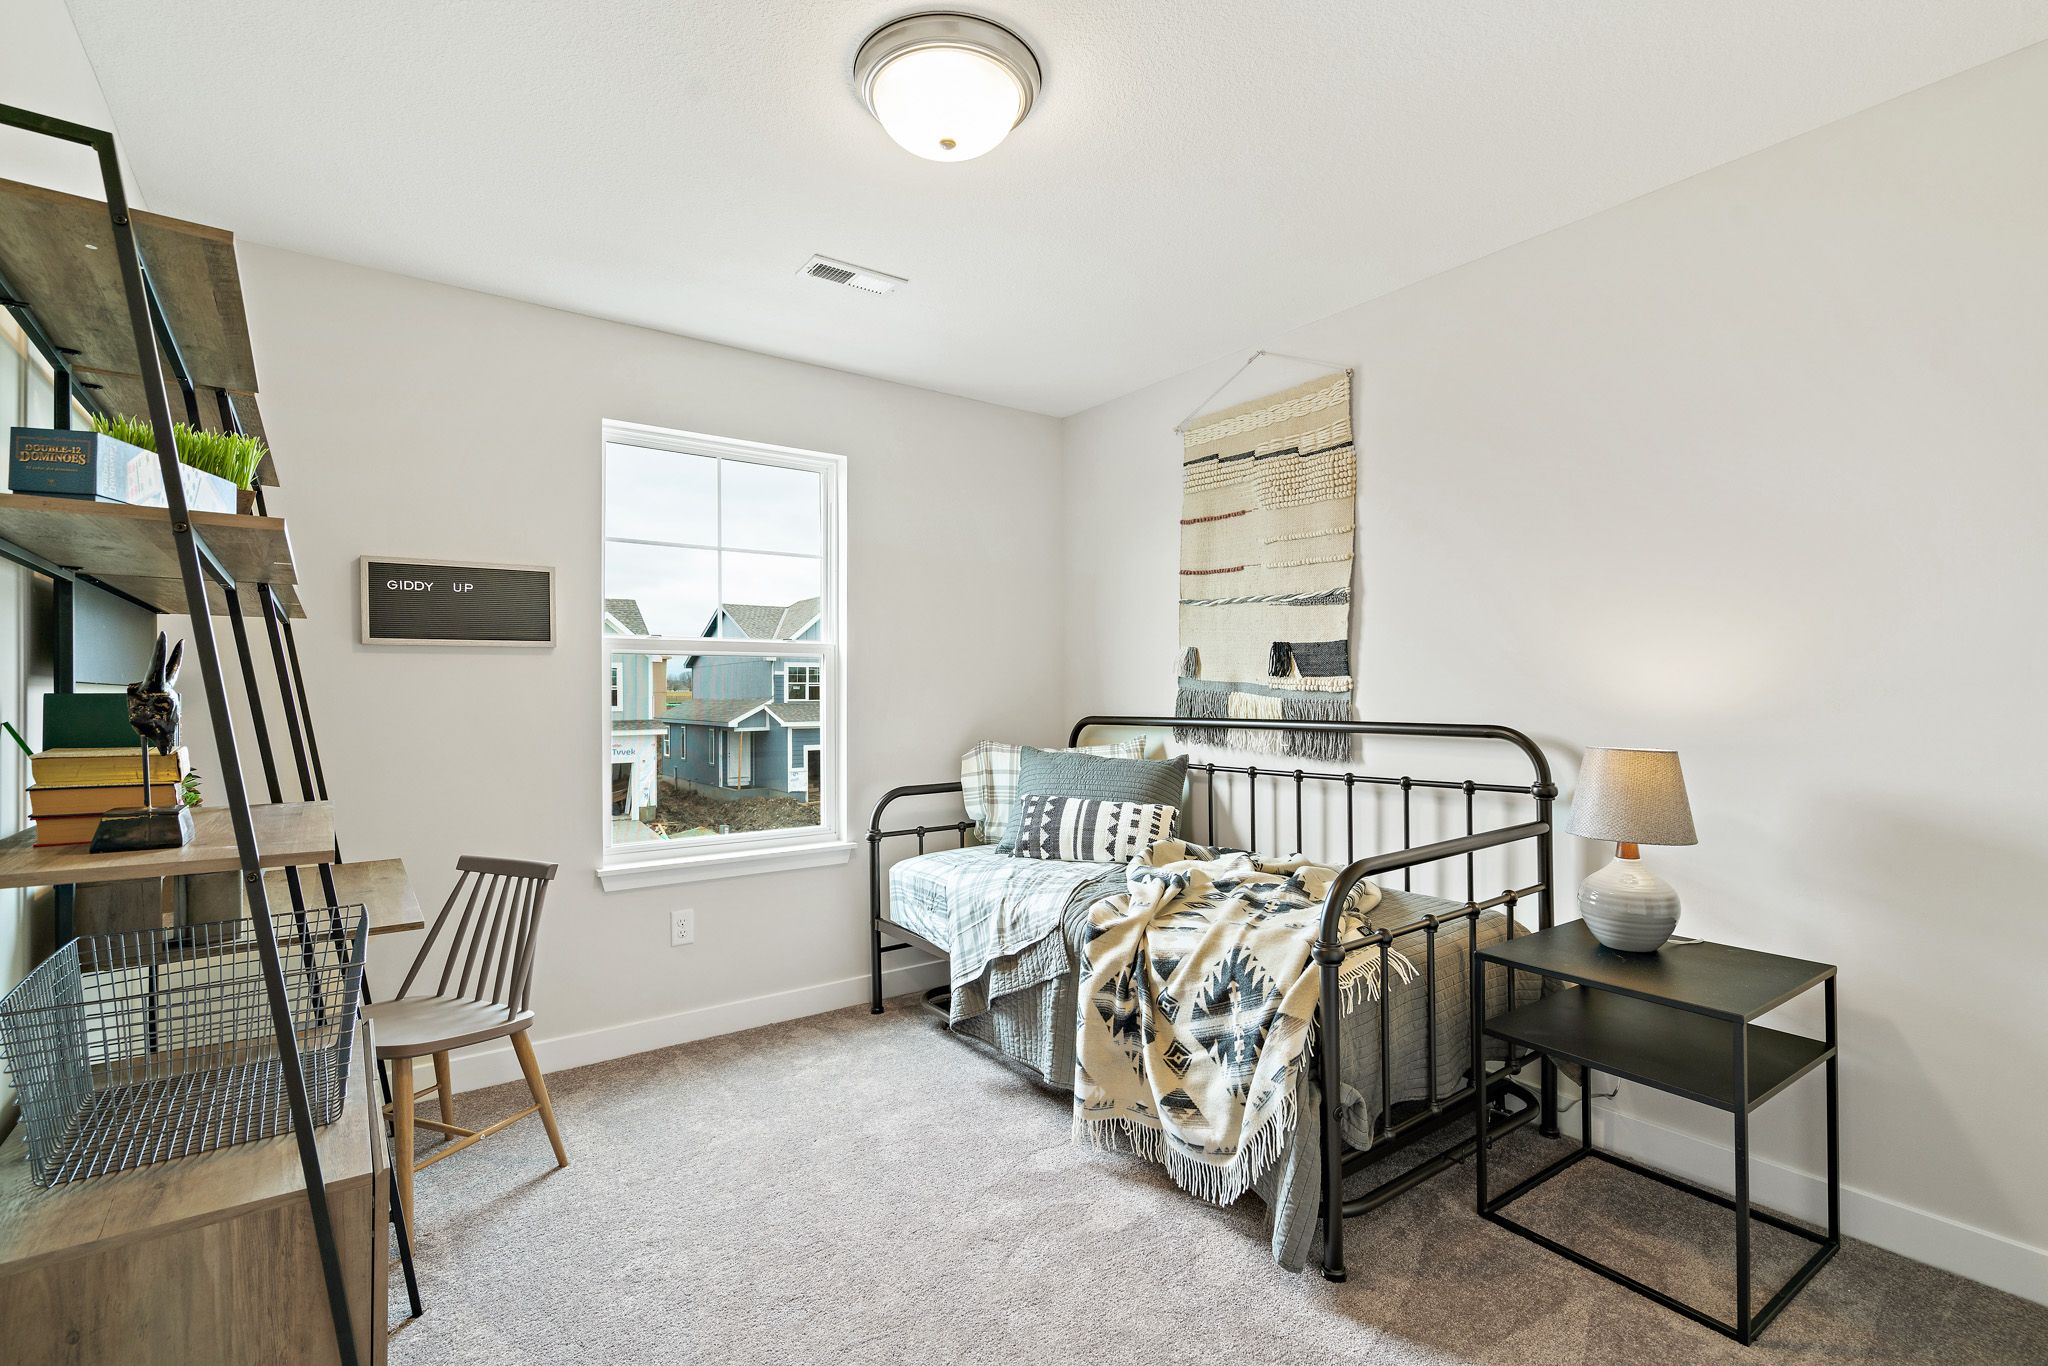 Bedroom featured in the indigo By clover & hive in Des Moines, IA